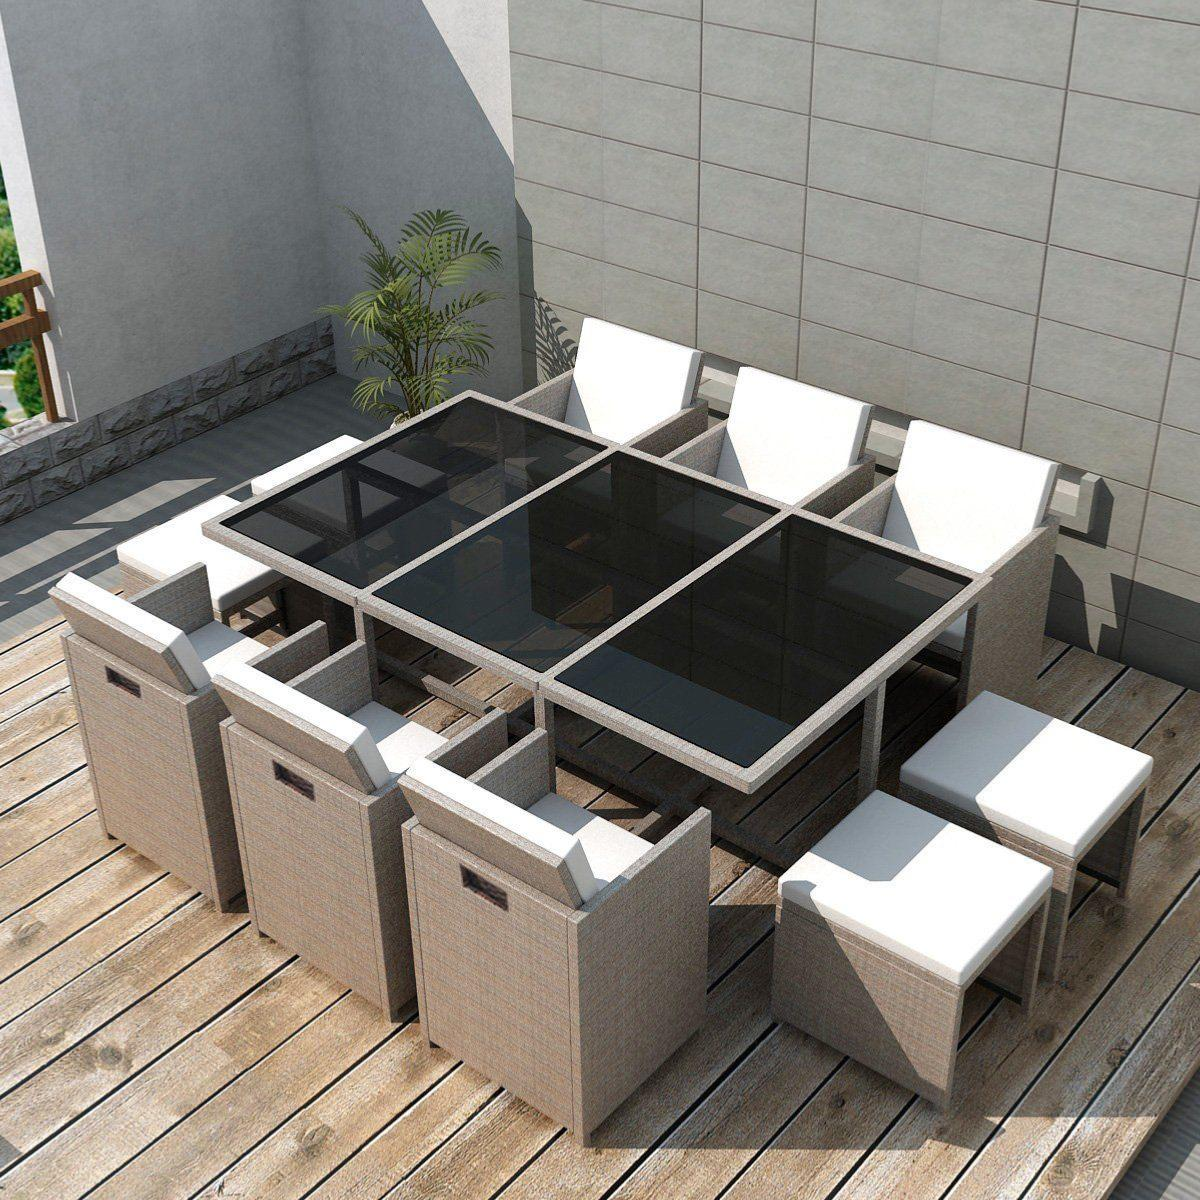 salon de jardin r sine tress e gris beige 10 personnes. Black Bedroom Furniture Sets. Home Design Ideas